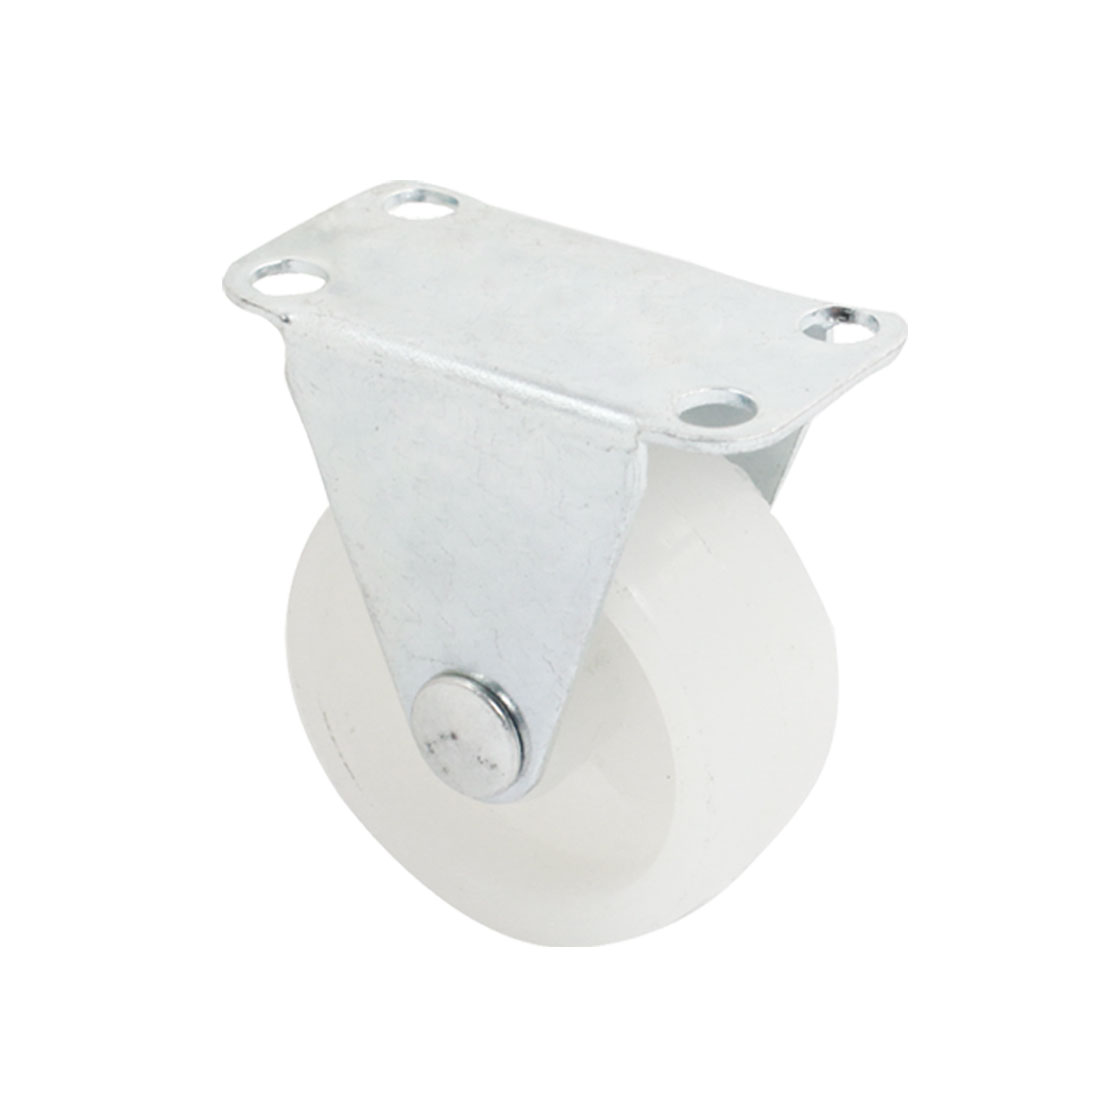 "Shopping Trolley 1.5"" Round Single Wheel Rectangle Top Plate Fixed Caster"